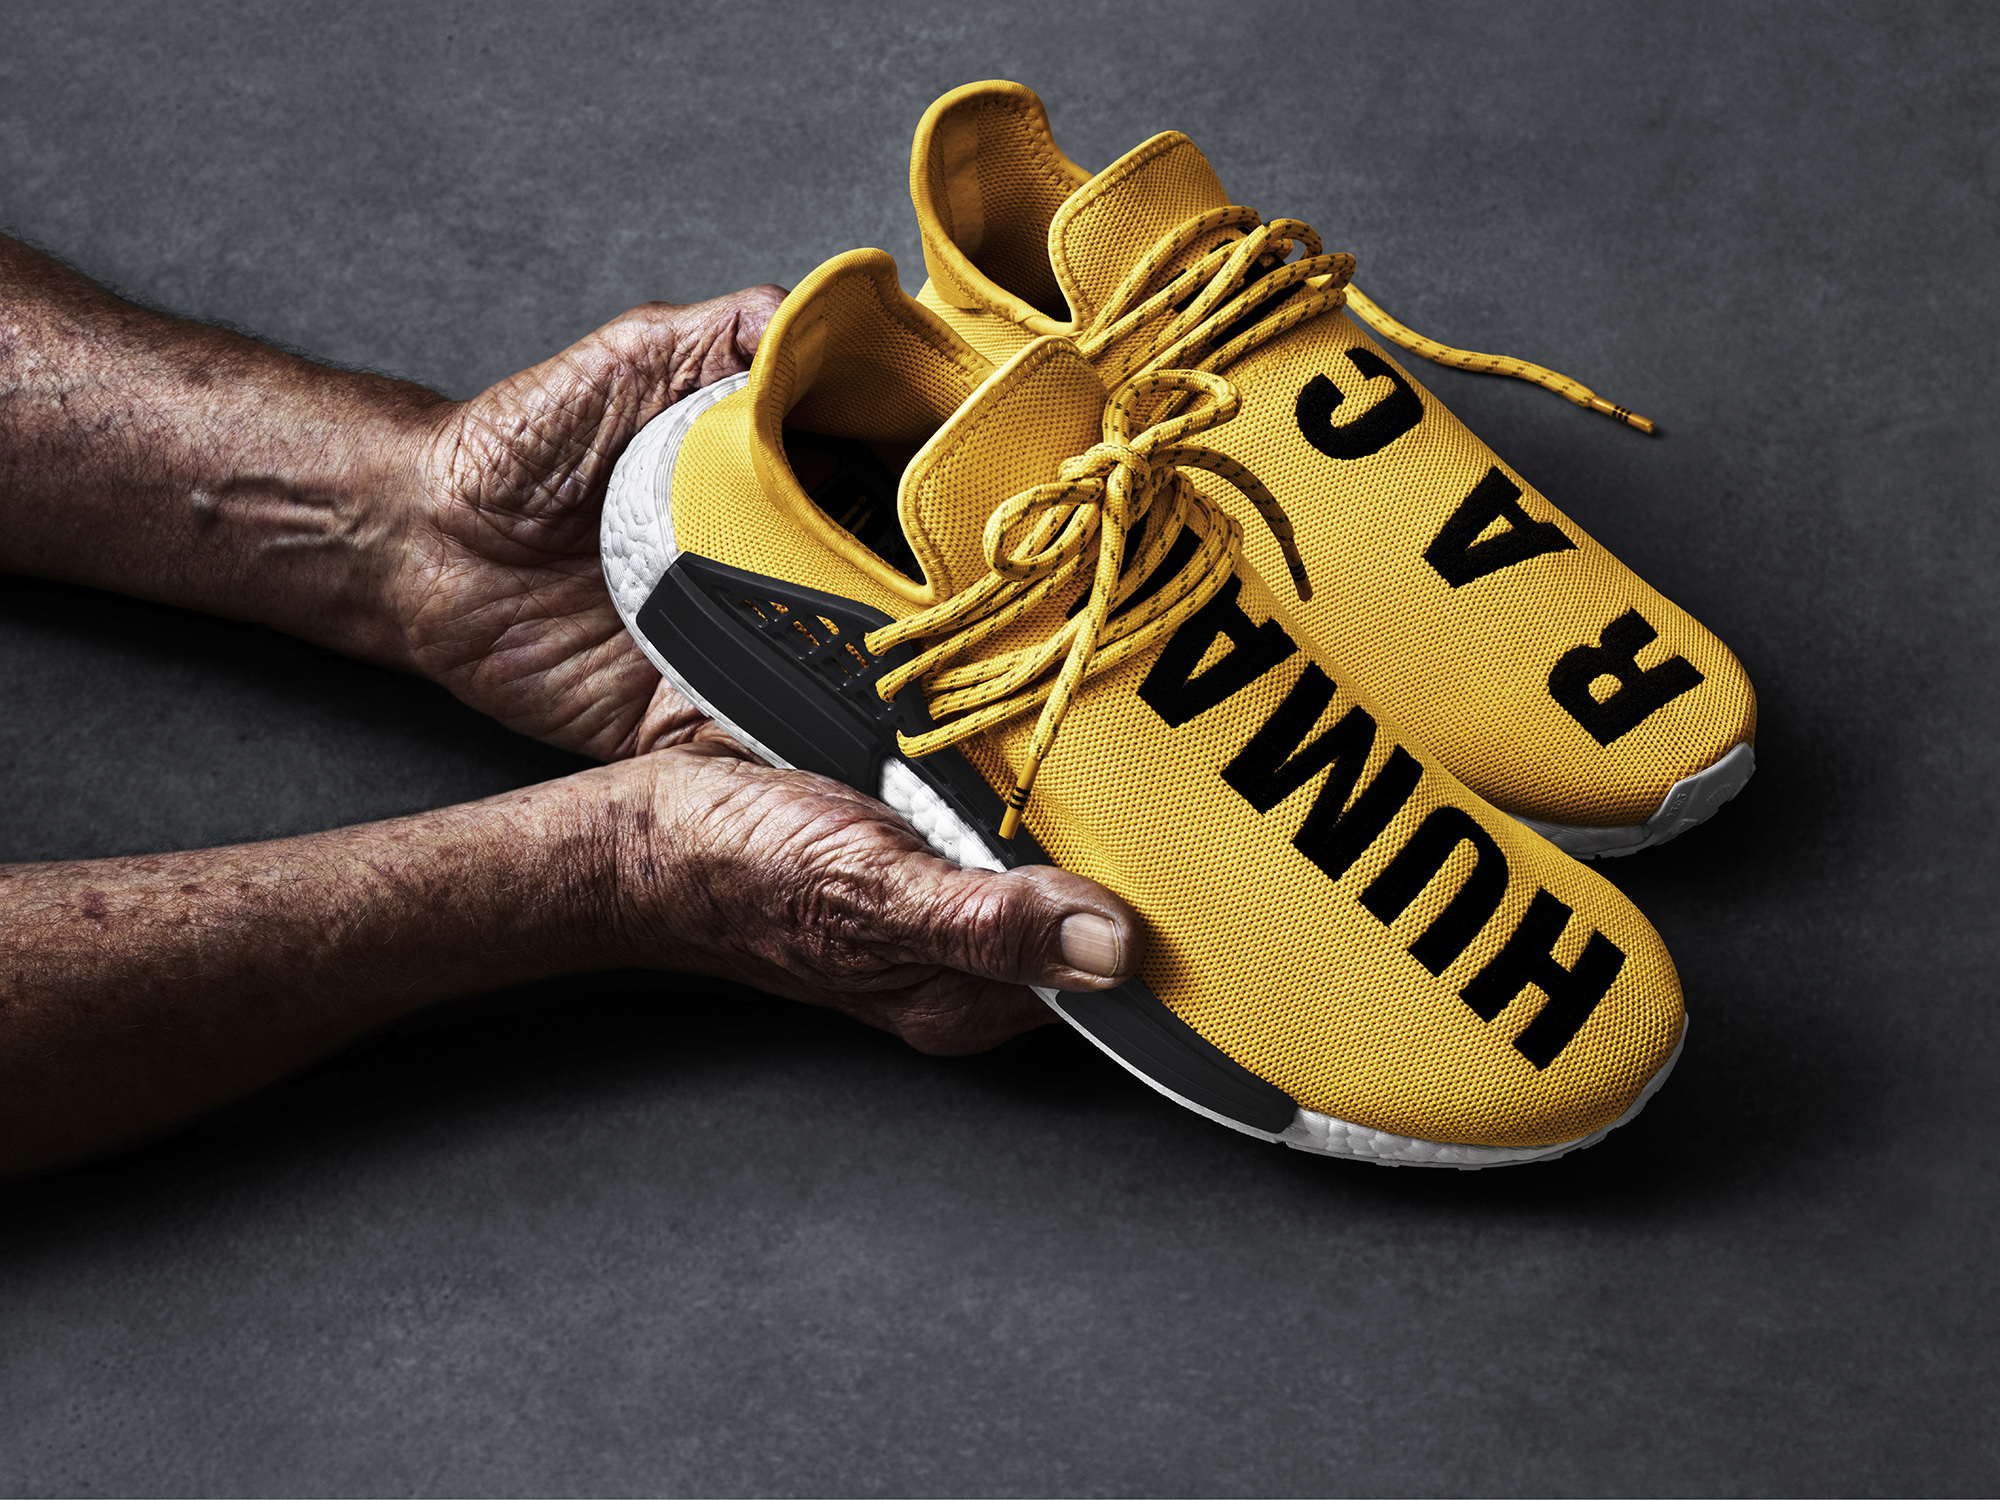 Pharrell Williams and adidas introduce the Hu NMD